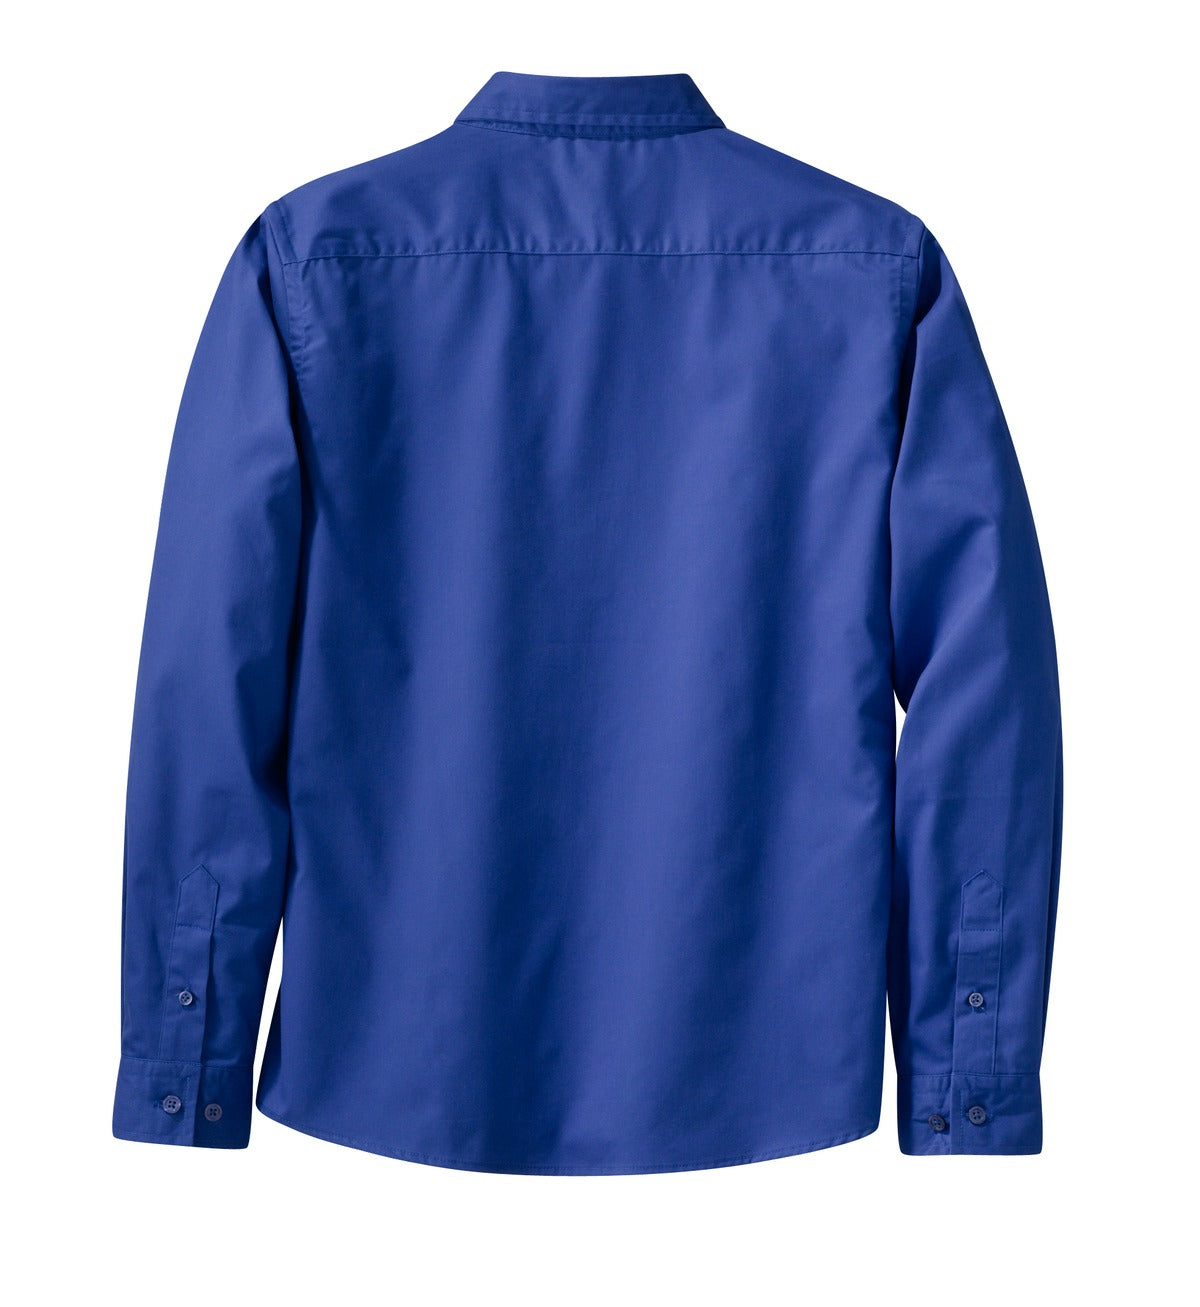 Mafoose Women's Long Sleeve Easy Care Shirt Royal/ Classic Navy-Back